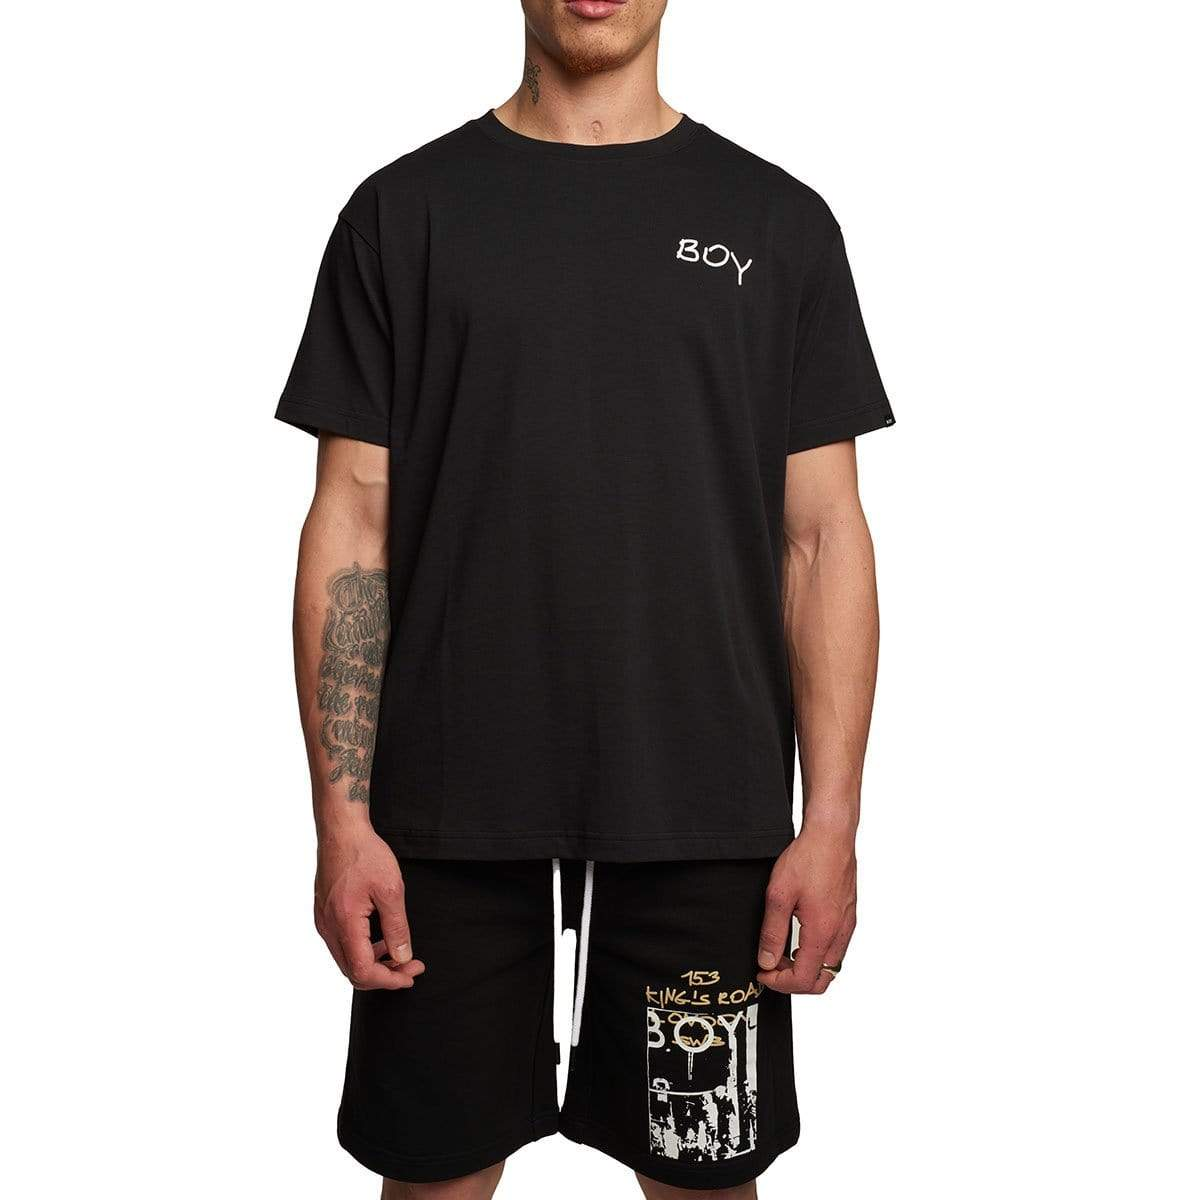 EPOCH TEE BLACK - XL